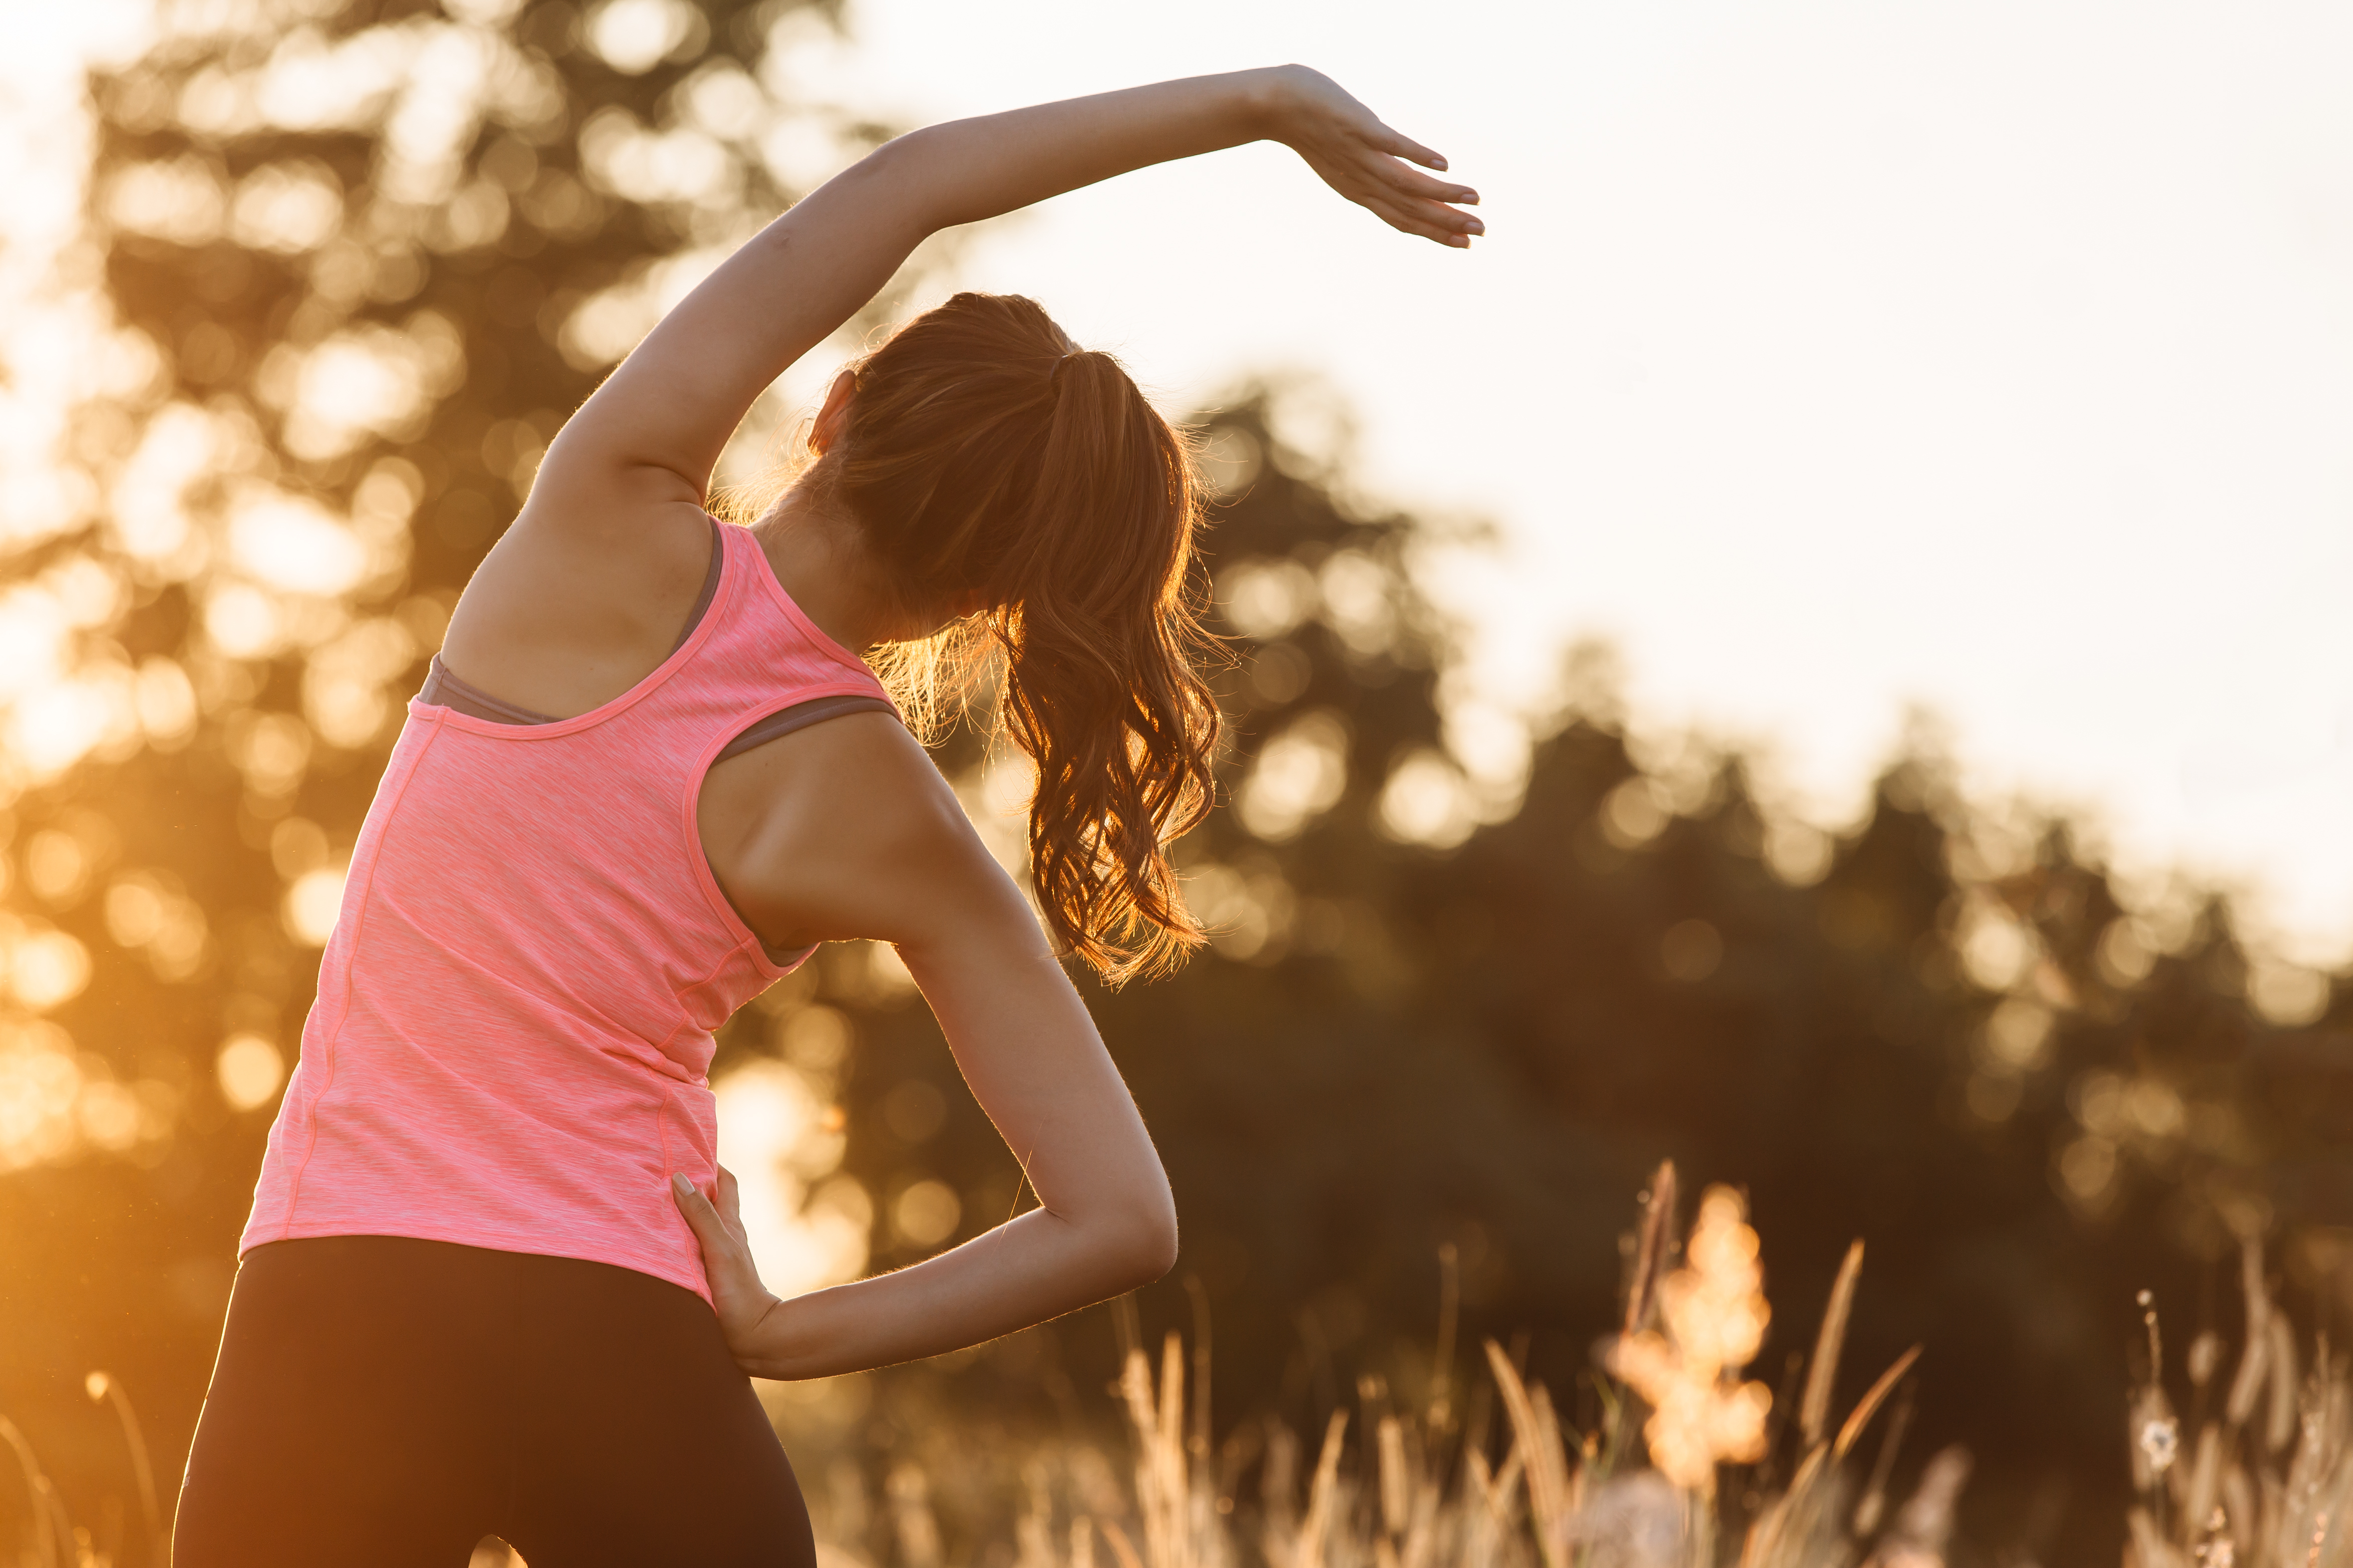 The Best Way To Maintain Your Plastic Surgery Results? Healthy Diet and Exercise